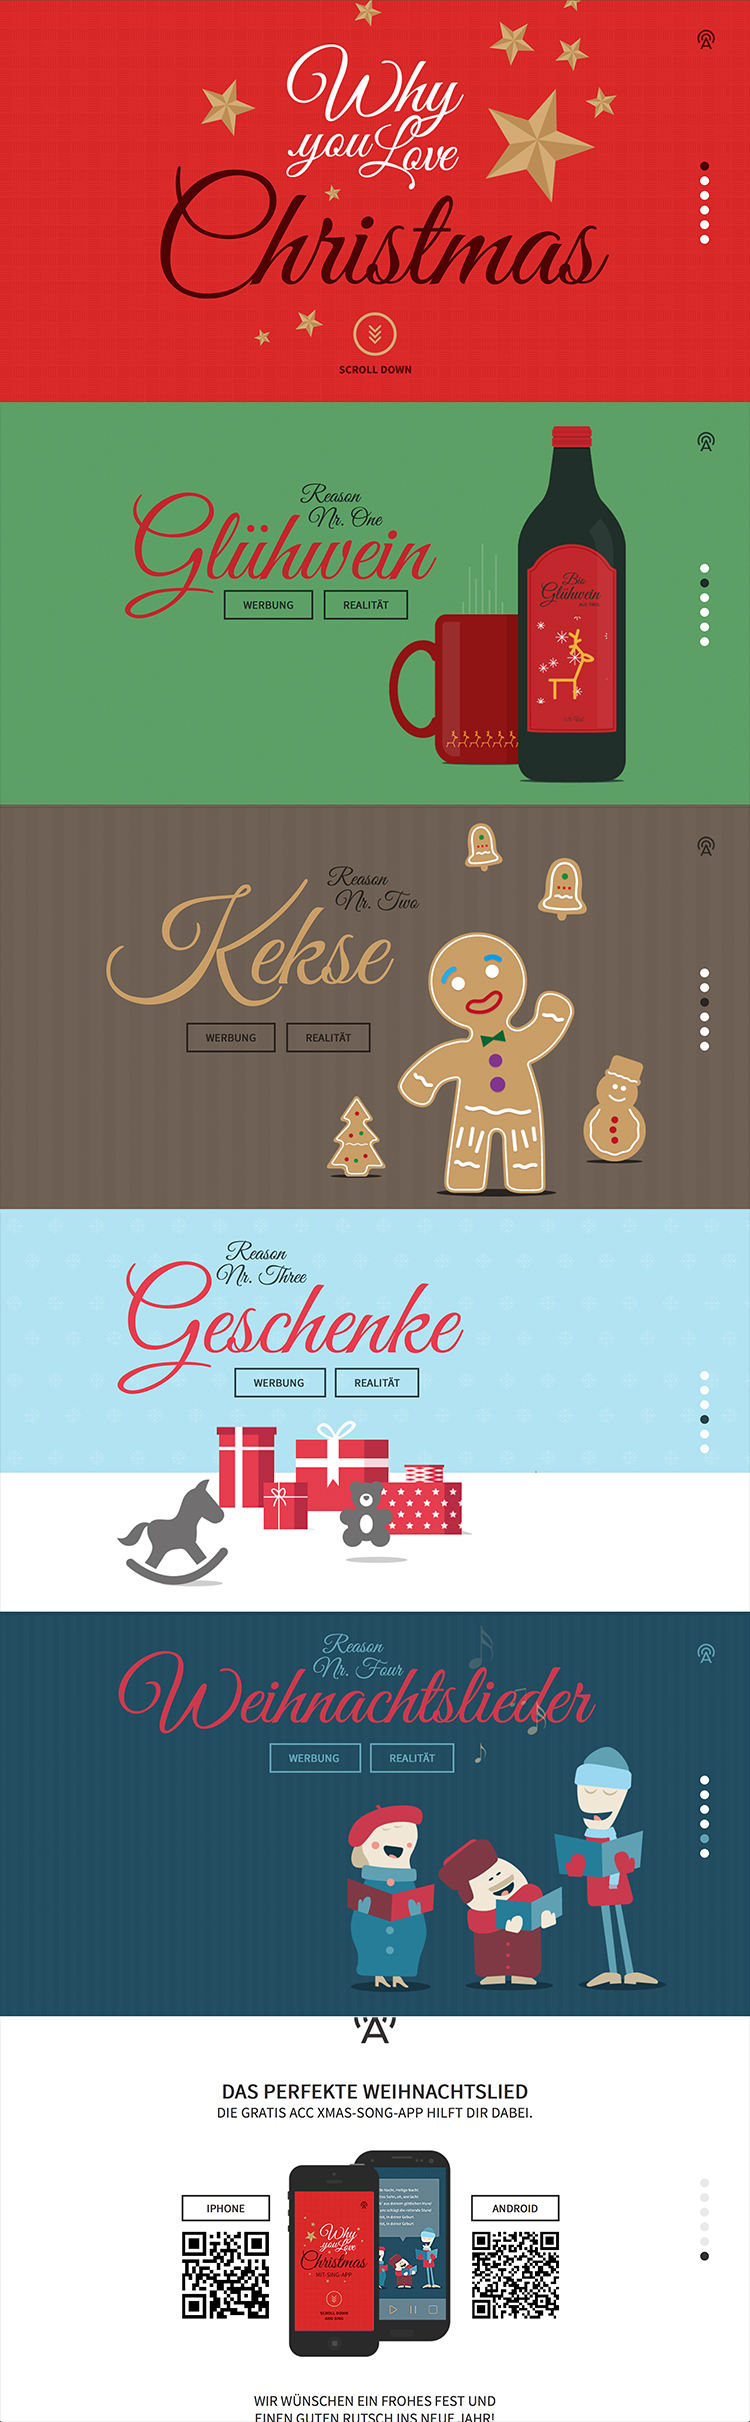 Why you love Christmas an example of flat ui design